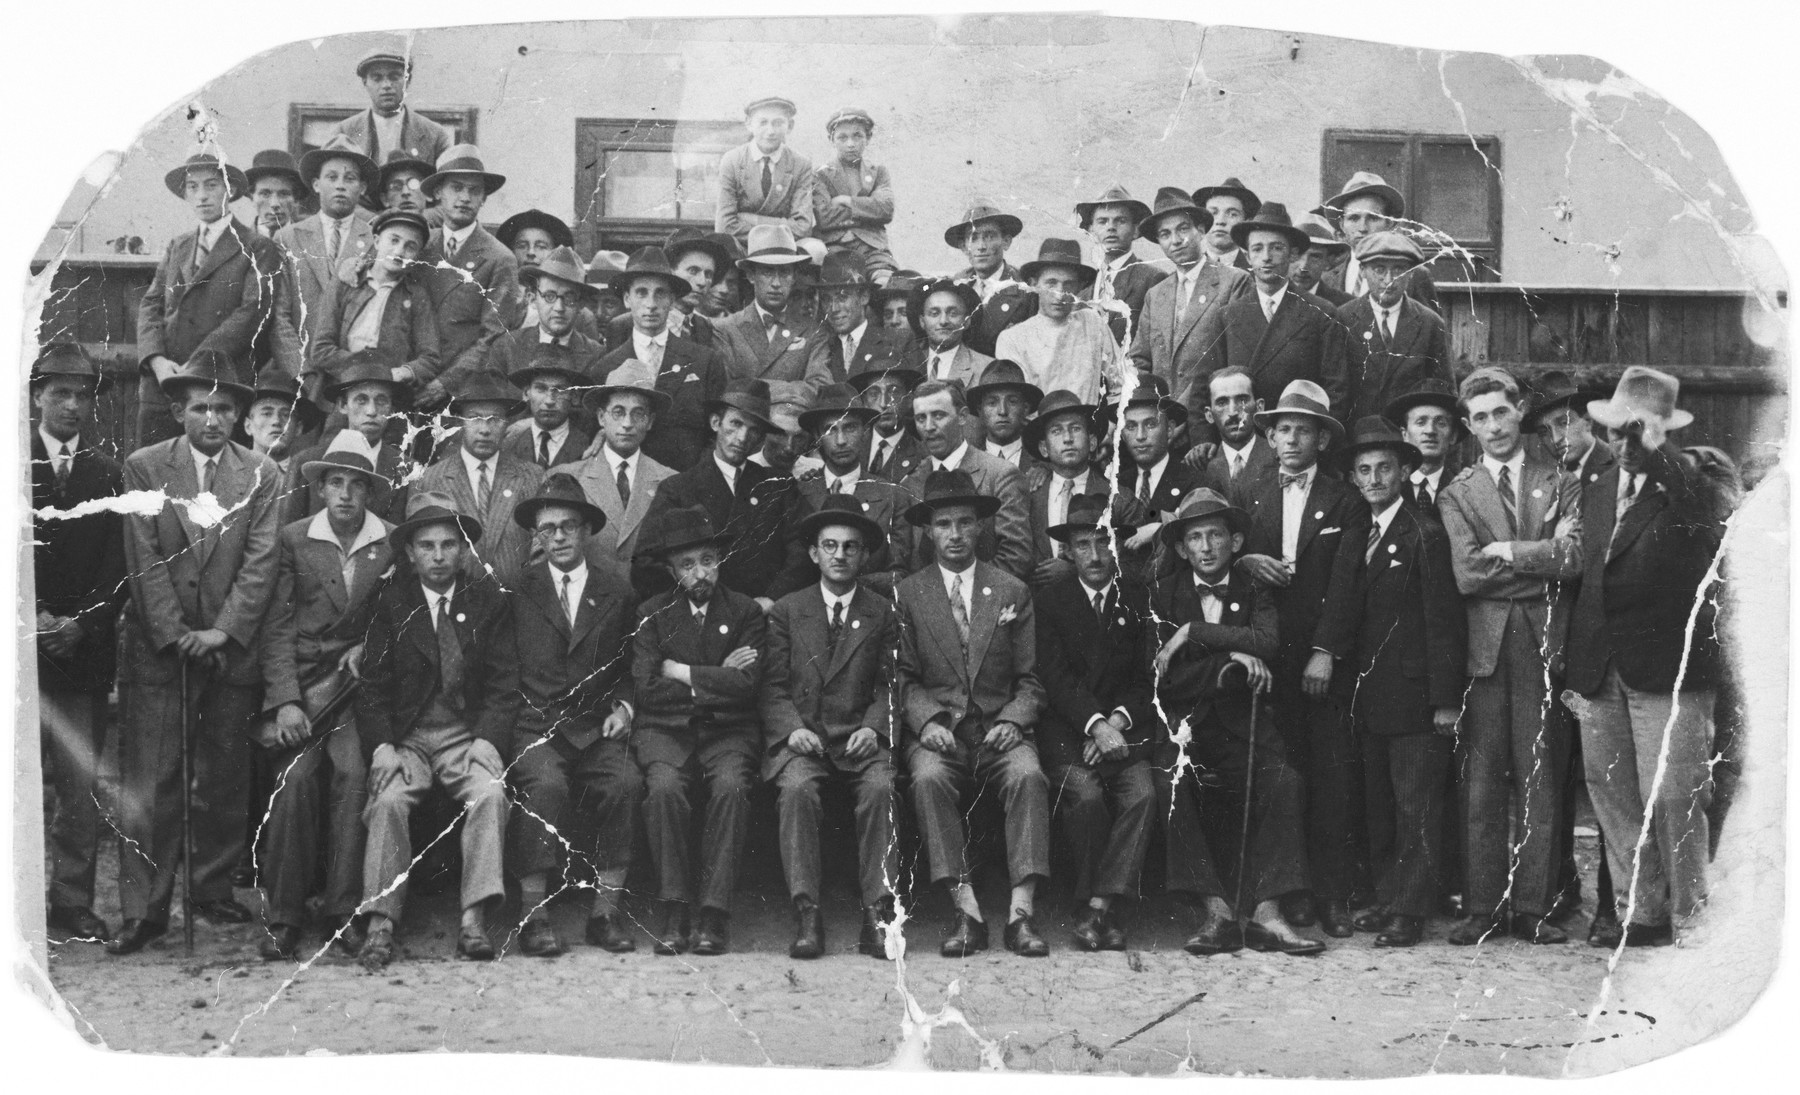 Group portrait of the members of the Mizrahi Zionist movement in Sighet.  Among those pictured are the leader, Mr. Koffler, head of the Jewish administration in Sighet.  Also pictured are Nachum Feldman, Moshe Yuszt, Efraim Raht, Yossy Yuszt and Ali Israel.